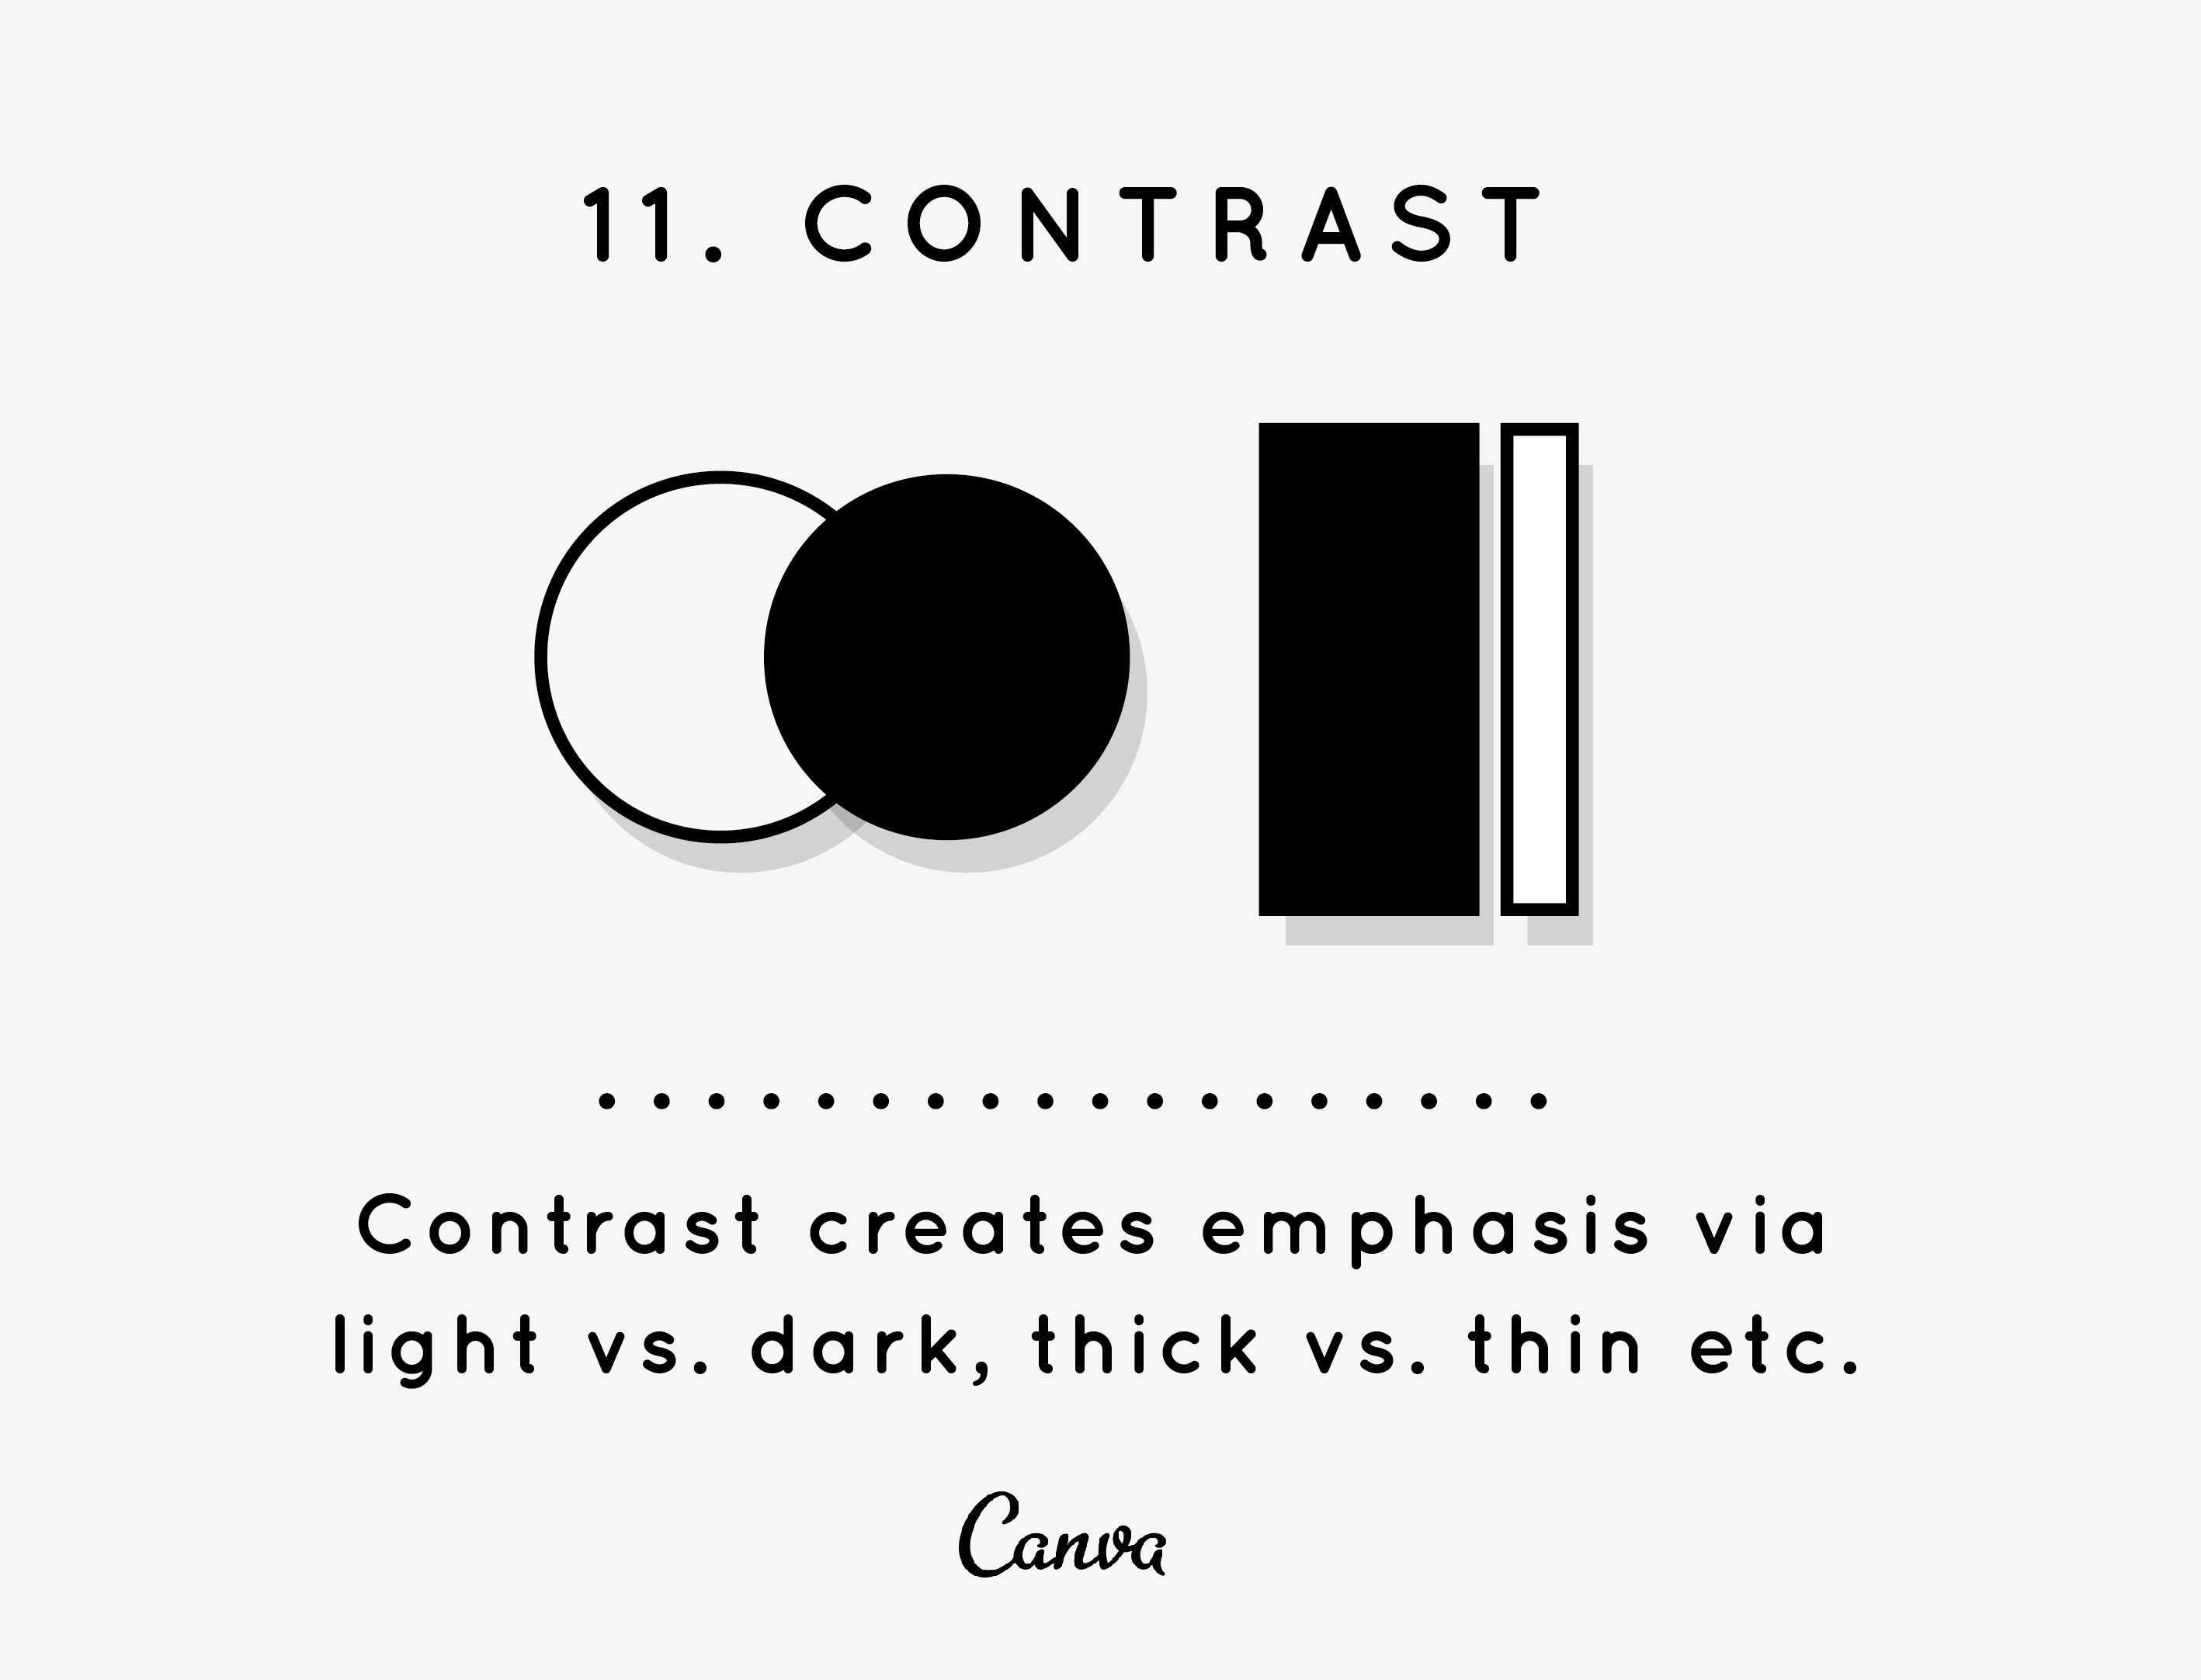 Design Elements And Principles Tips Inspiration By Canva The Diagram Below Is Just A Rough Guide To Layout Of Typical Contrast Often Magical Key Ingredient Making Your Designs Pop Which Sometimes Frustrating Demand From Many Clients